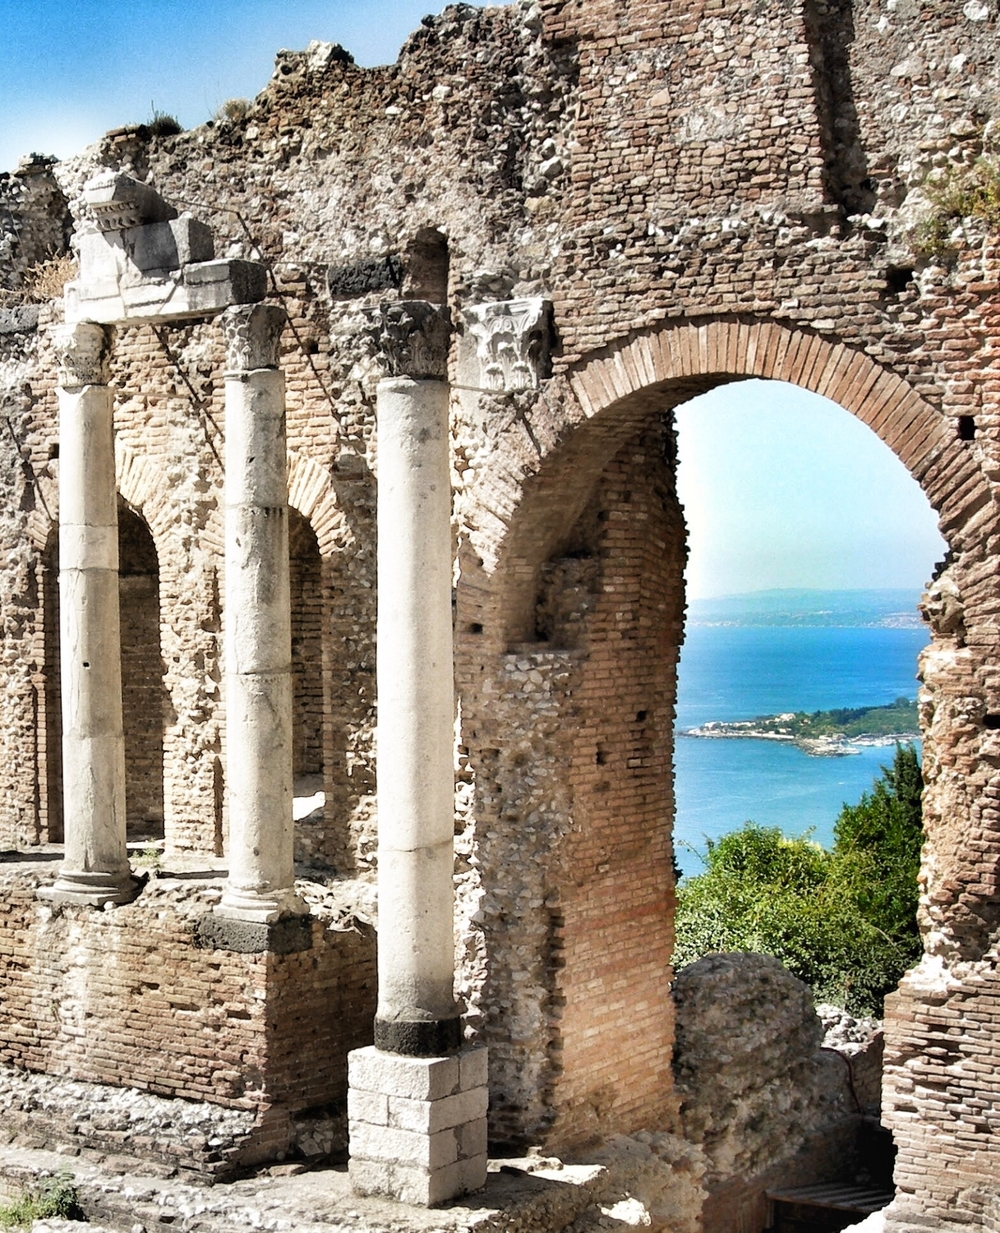 View of beautiful Taormina, Sicily (they have concerts in the old Greek Amphitheatre)